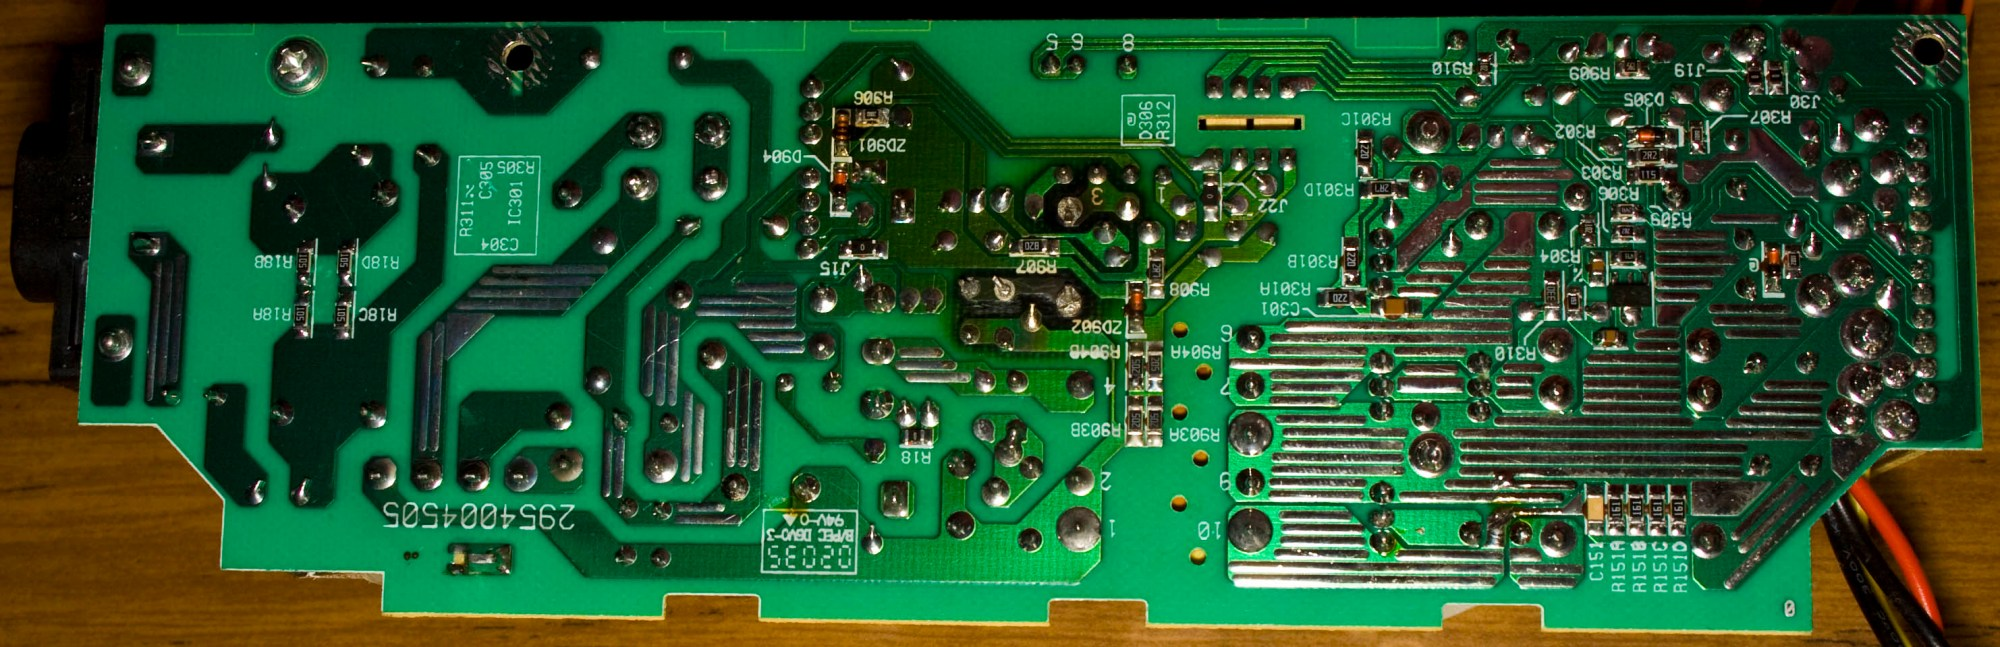 hight resolution of original xbox vga wiring diagram wiring library naturally the problem would have to be on the